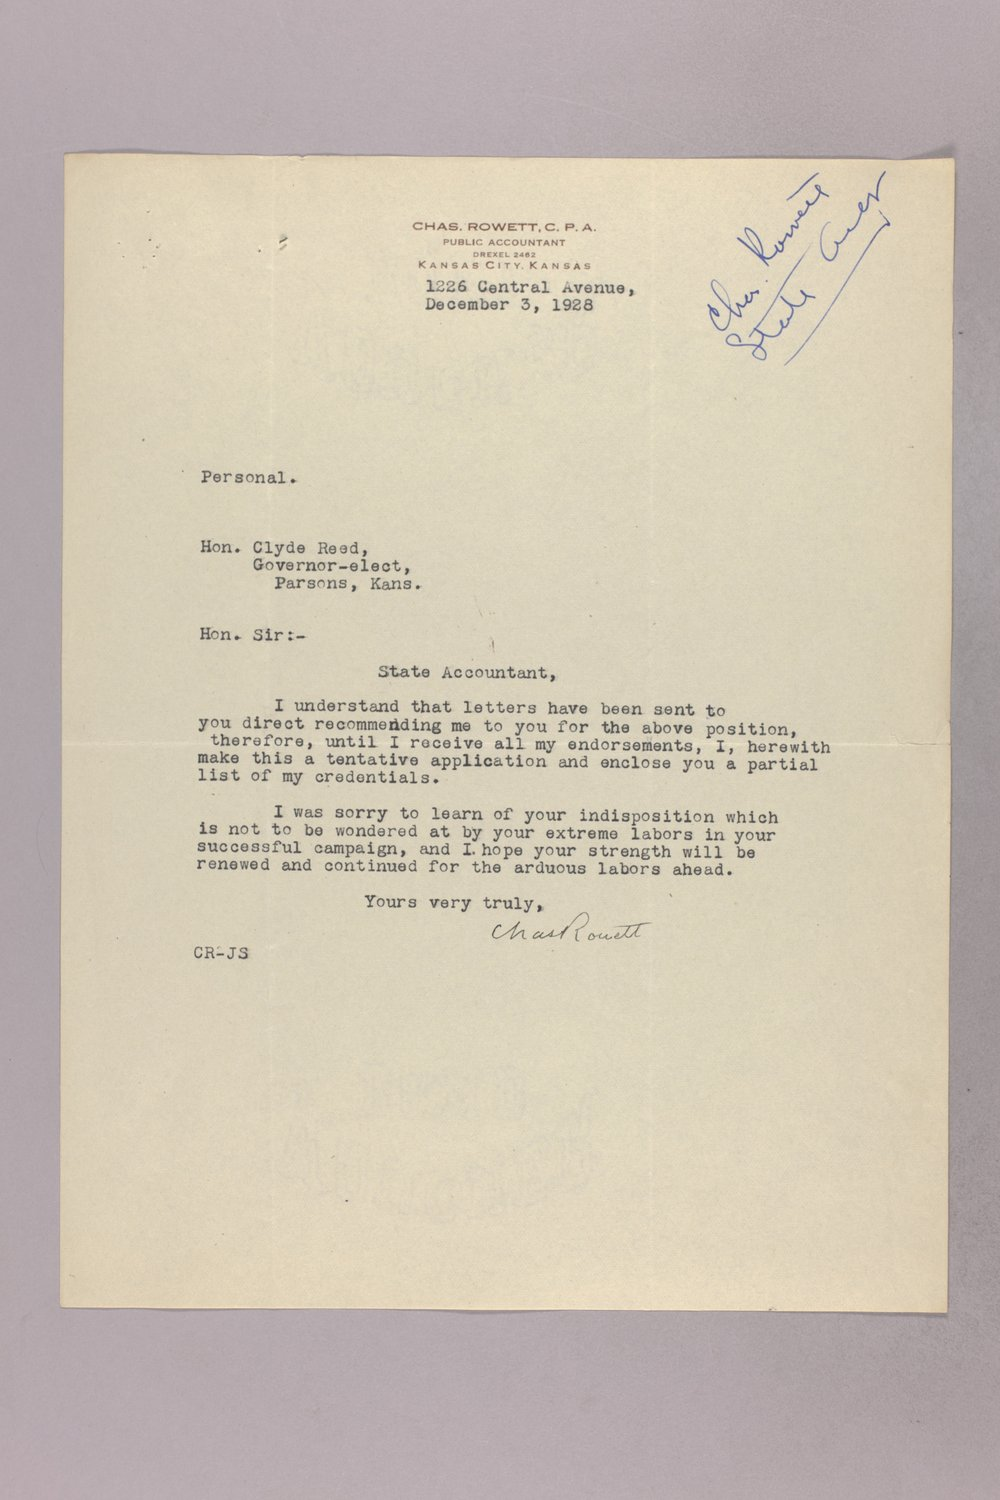 Governor Clyde M. Reed correspondence, State Accountant - 7